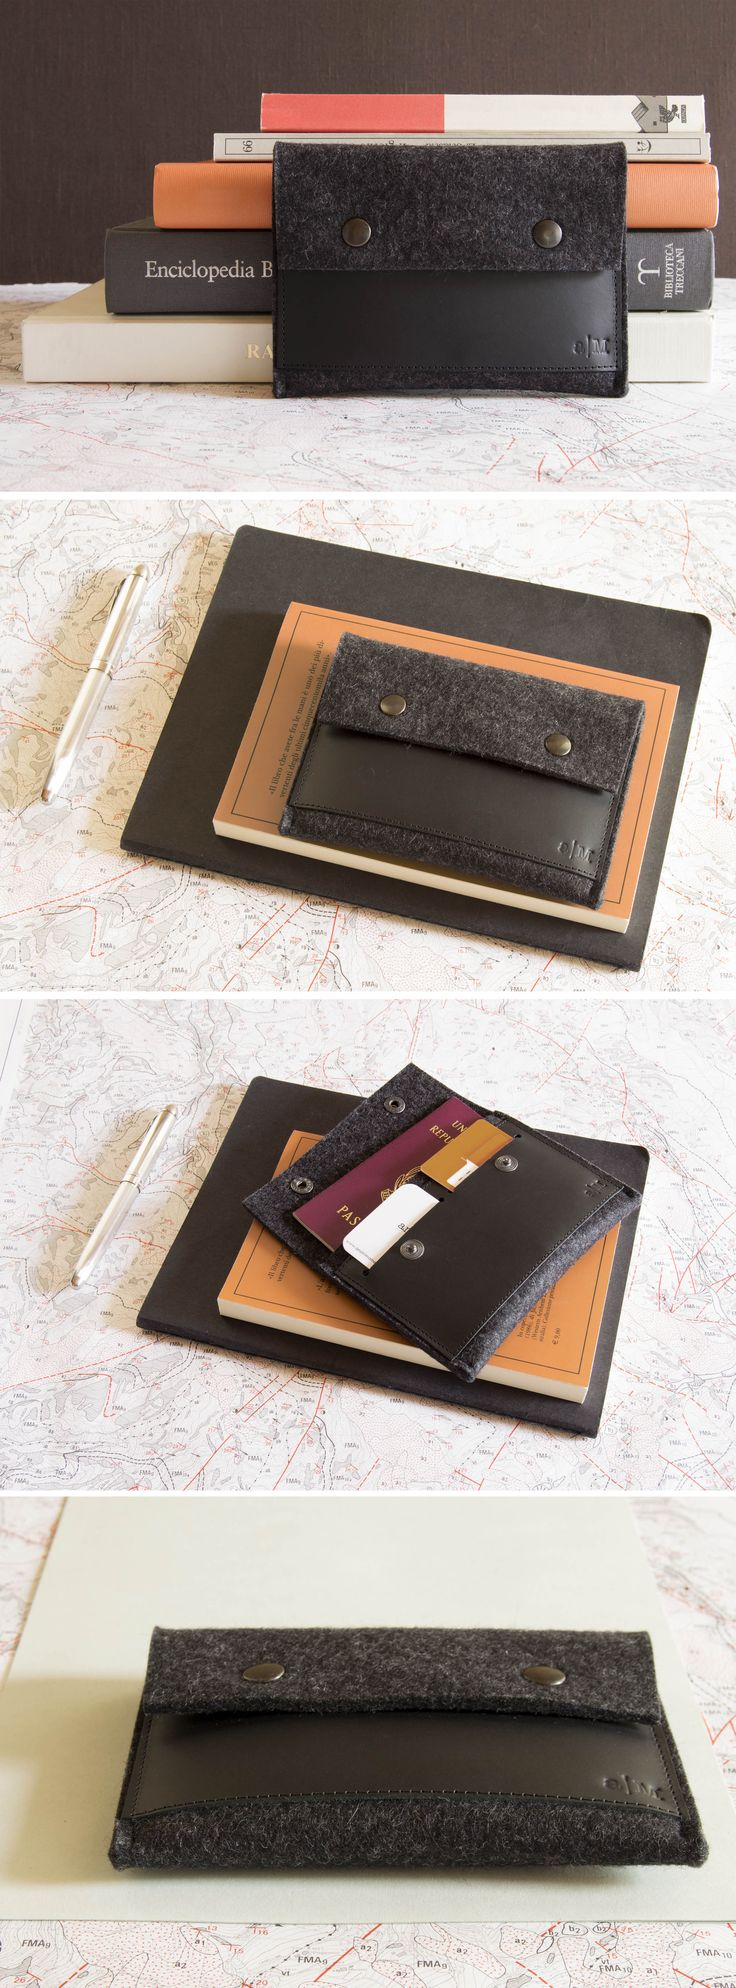 Passport wallet - wool felt and vegetable tanned leather - black - Made in Italy #passportwallet #passport #case #wallet #traveling